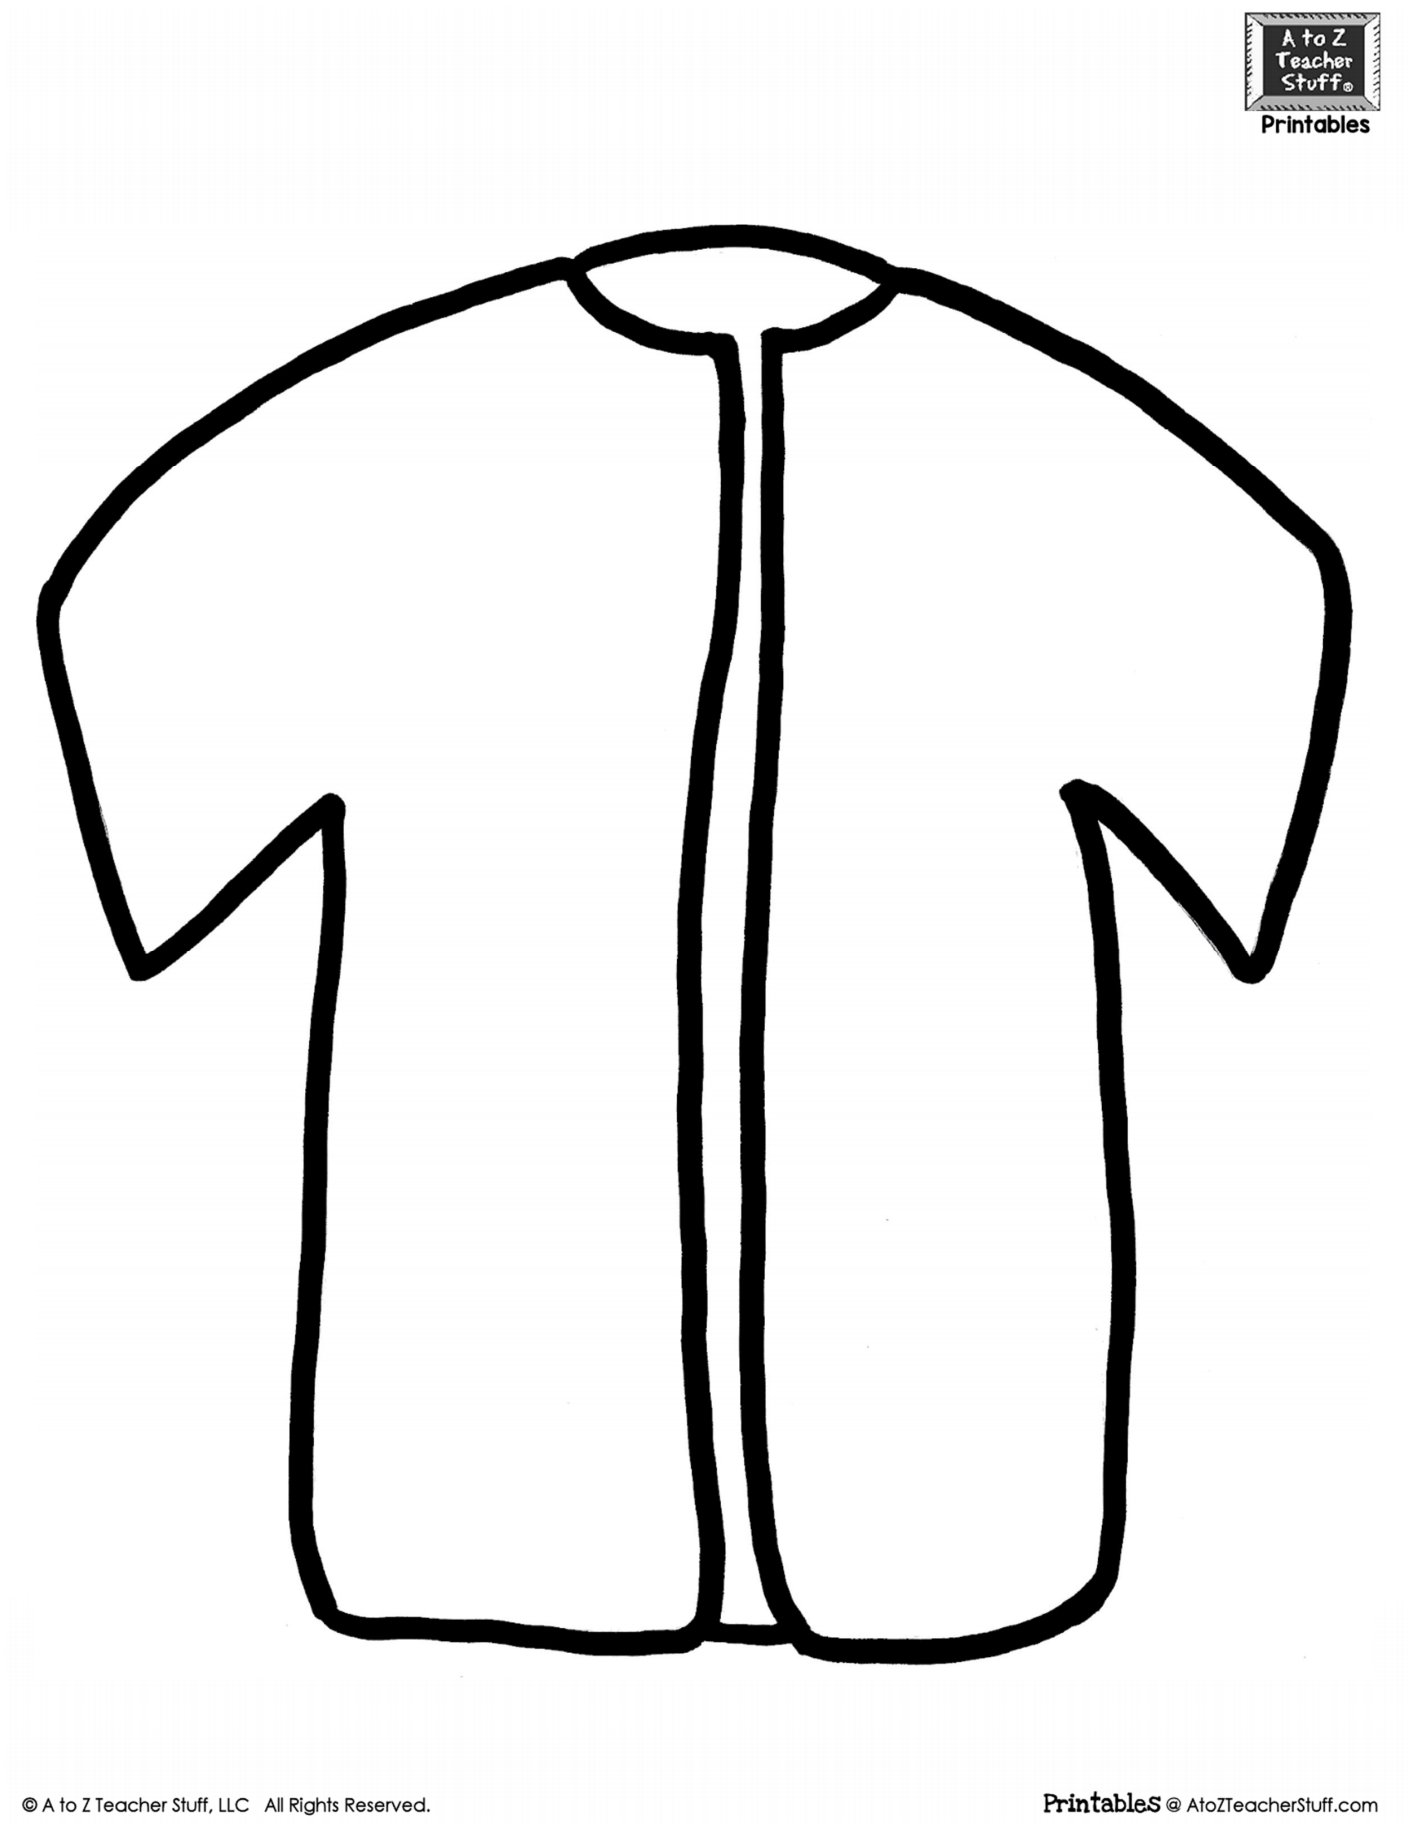 Shirt Or Jacket Outline Printable Pattern A To Z Teacher